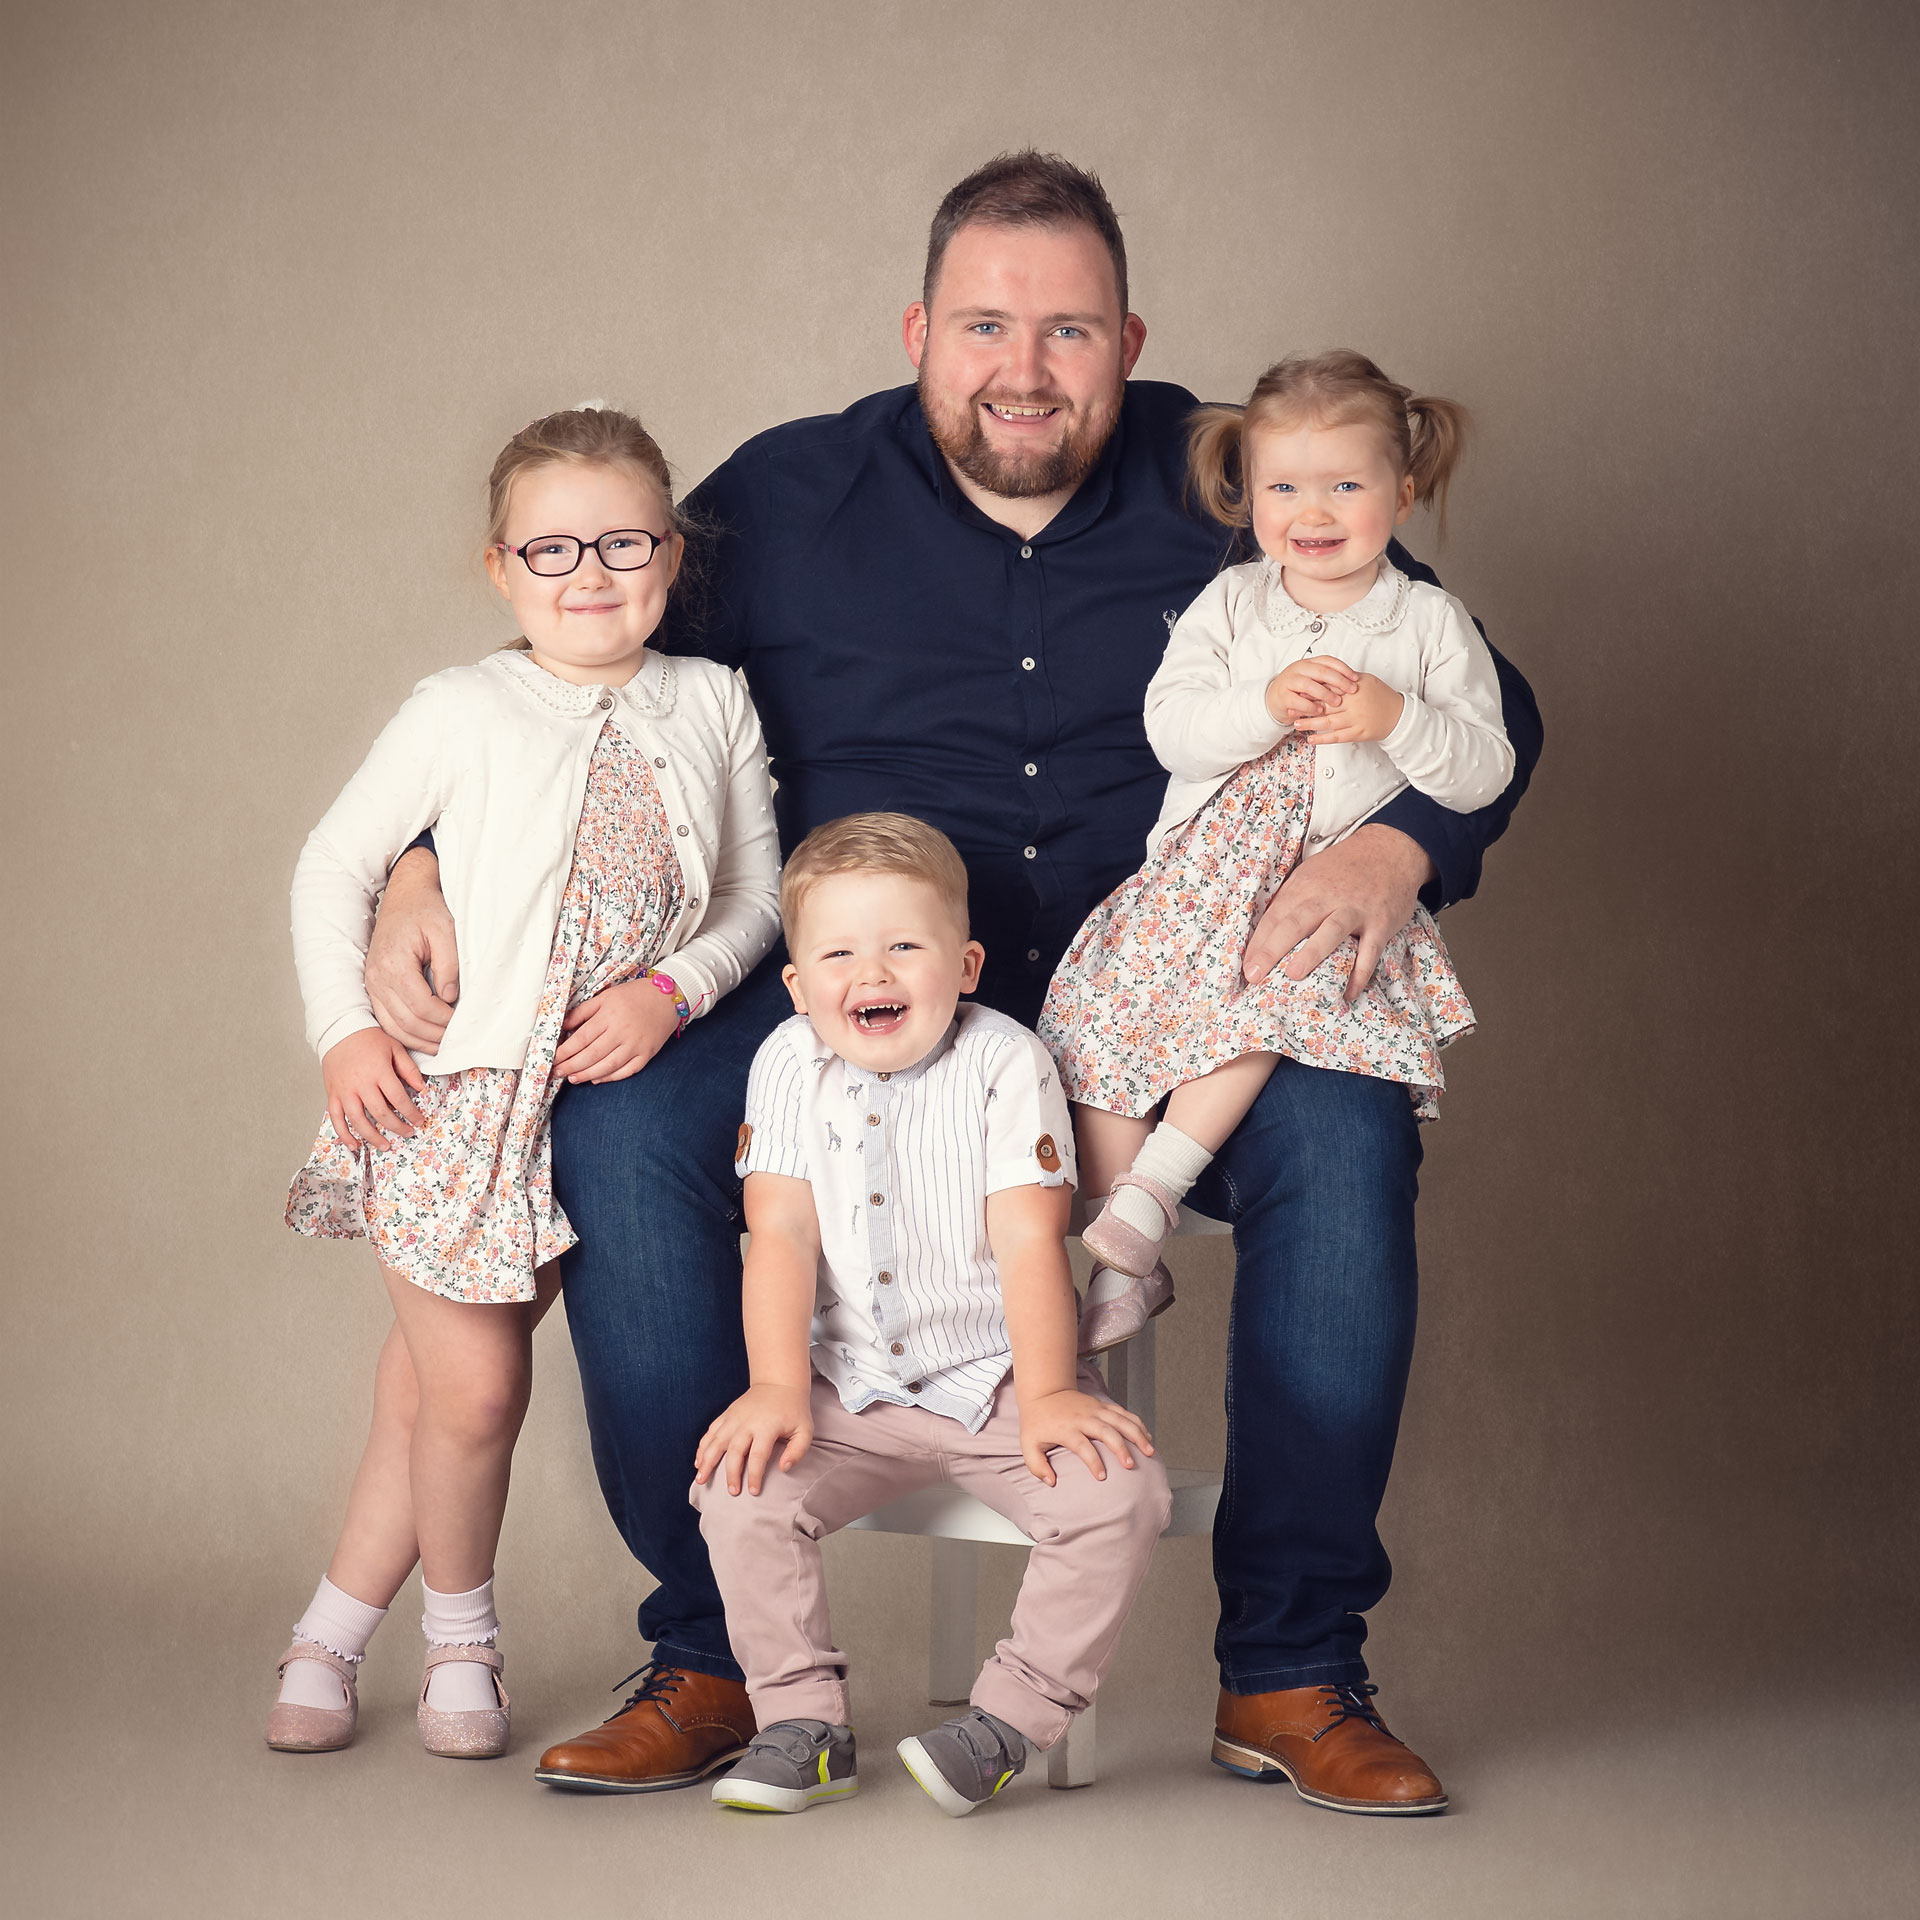 Family Photographer Northern Ireland Fermanagh Tyrone Donegal